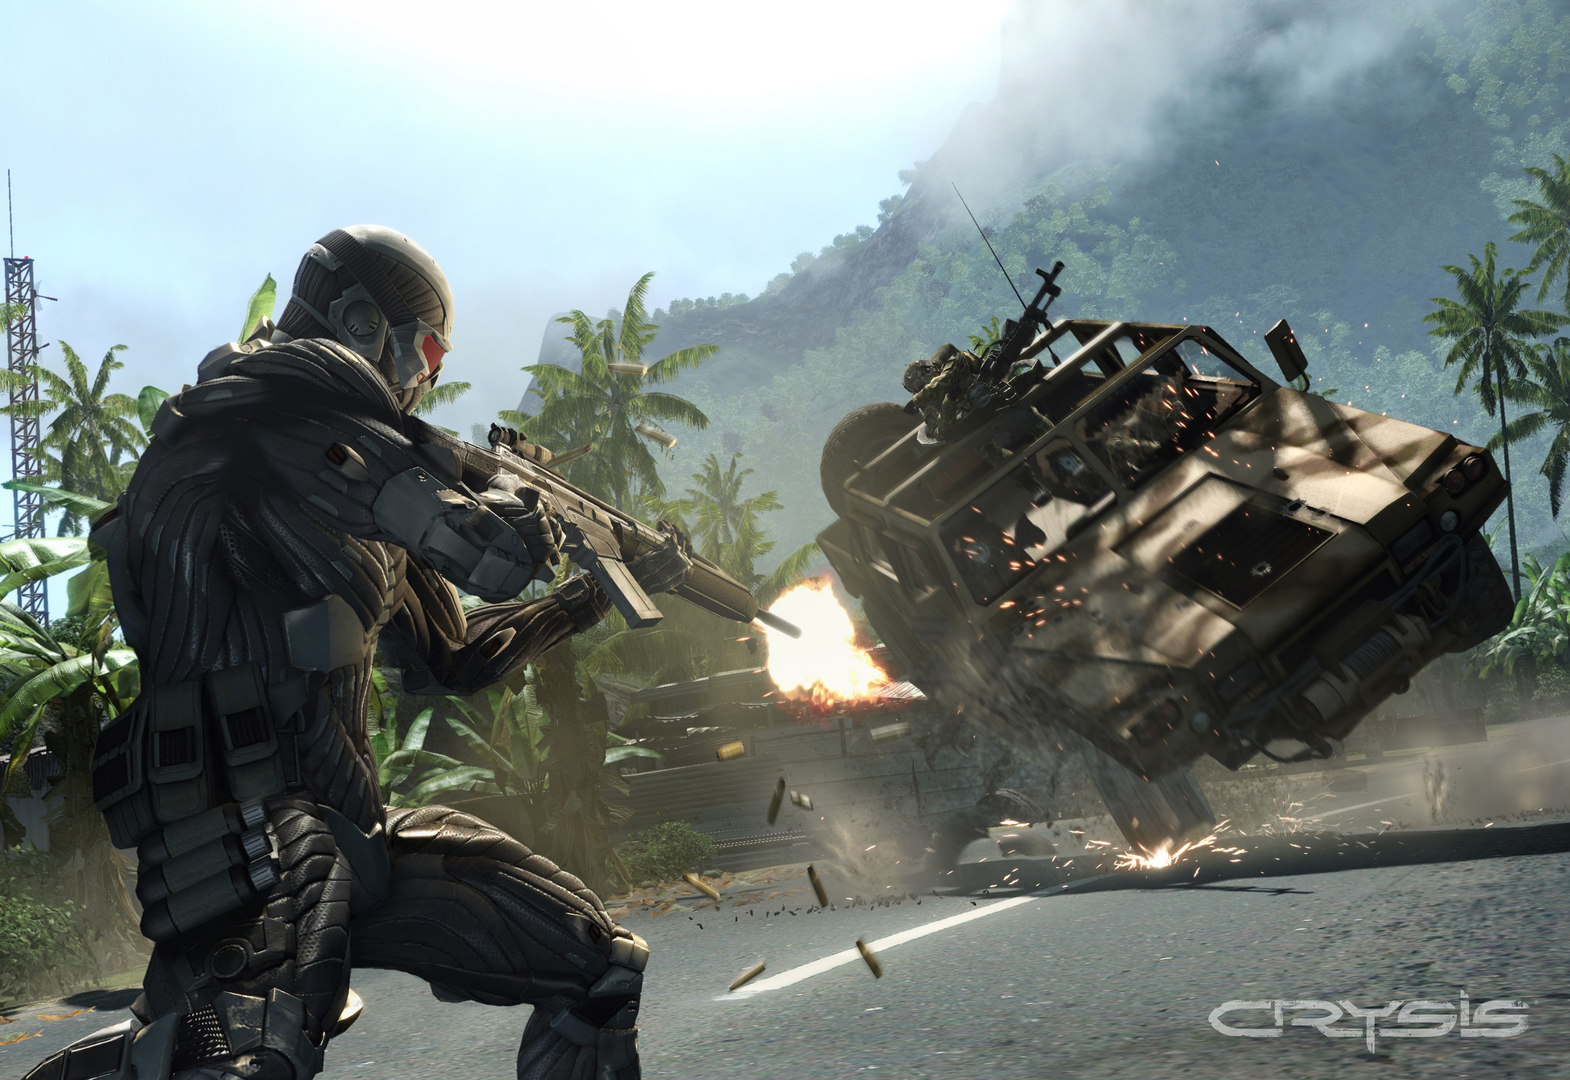 Find the best laptop for Crysis